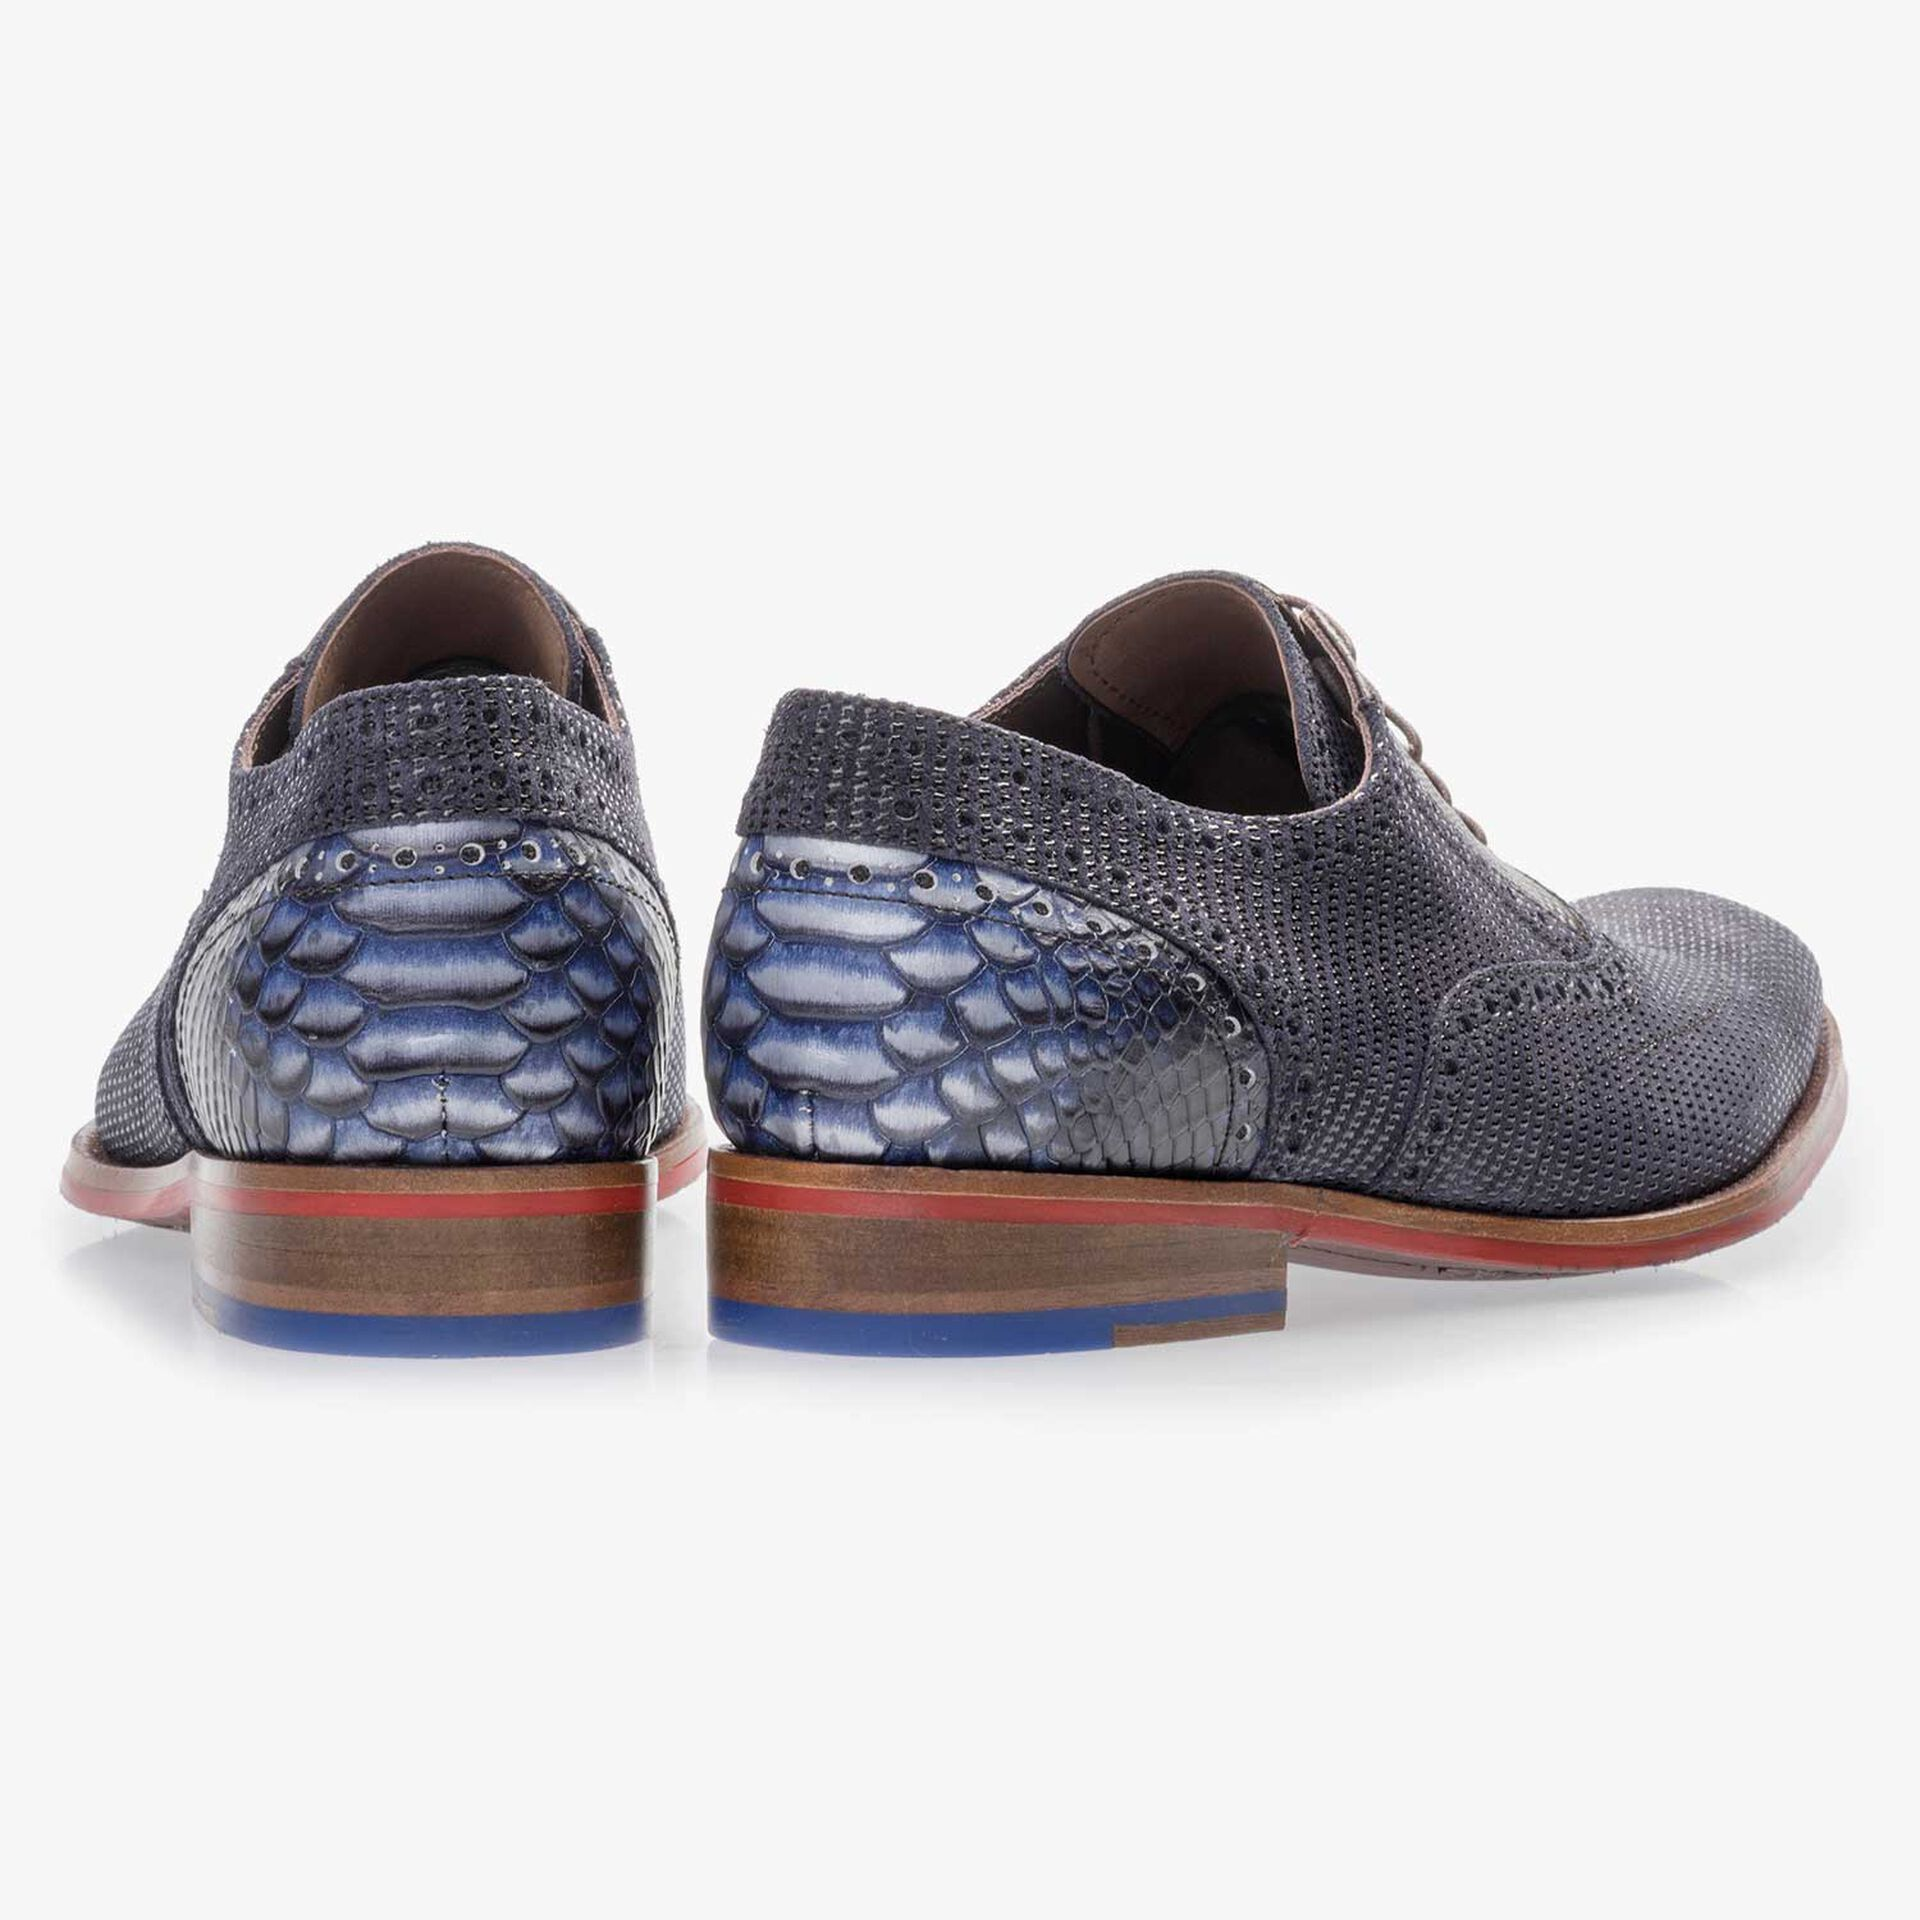 Dark blue, patterned suede leather lace shoe